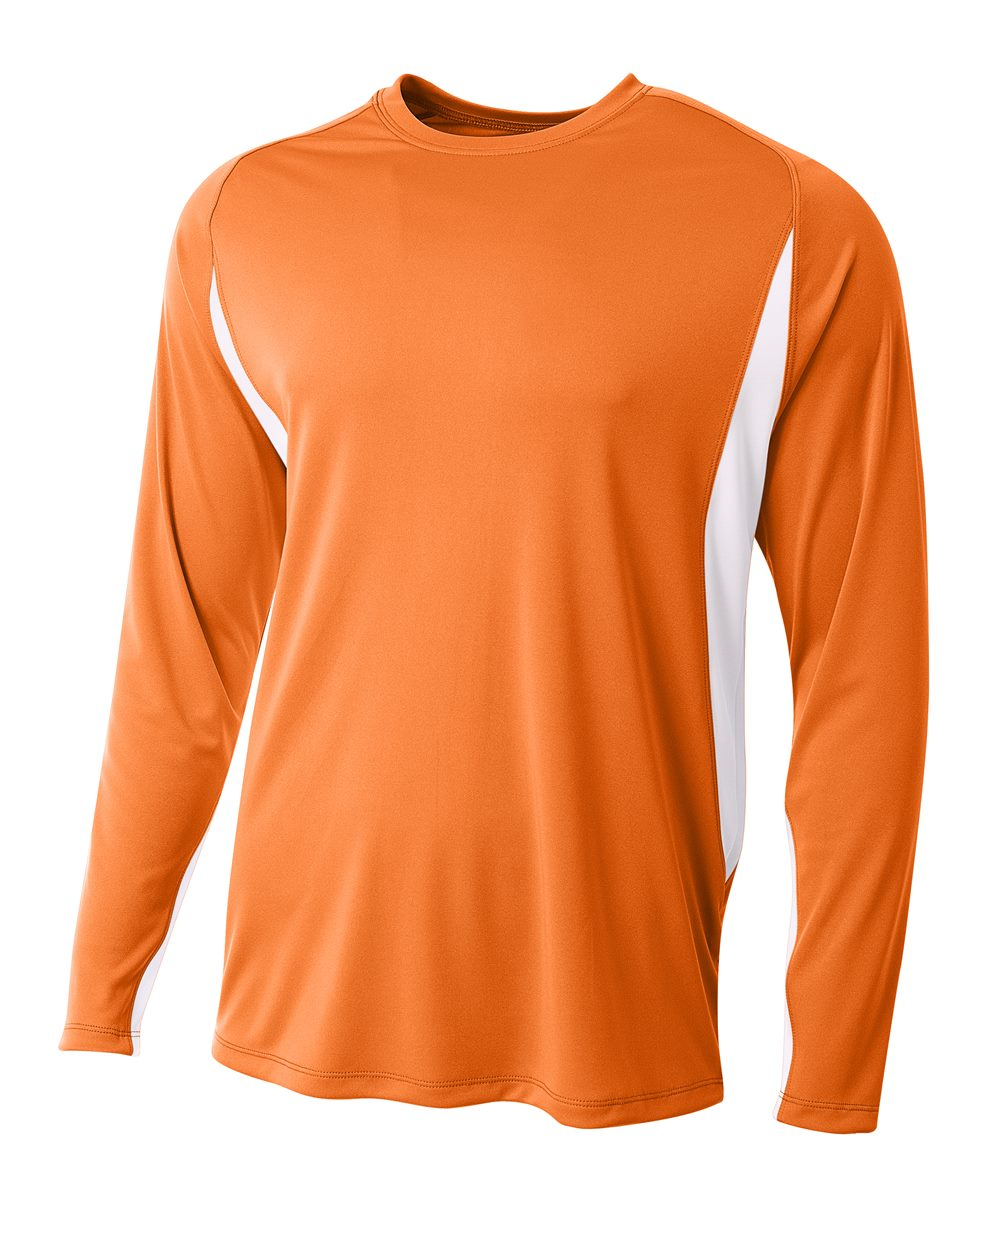 *A4 Men/'s Cooling Performance Long Sleeve Crew Neck Tee Shirt 8 COLORS-3165 NEW